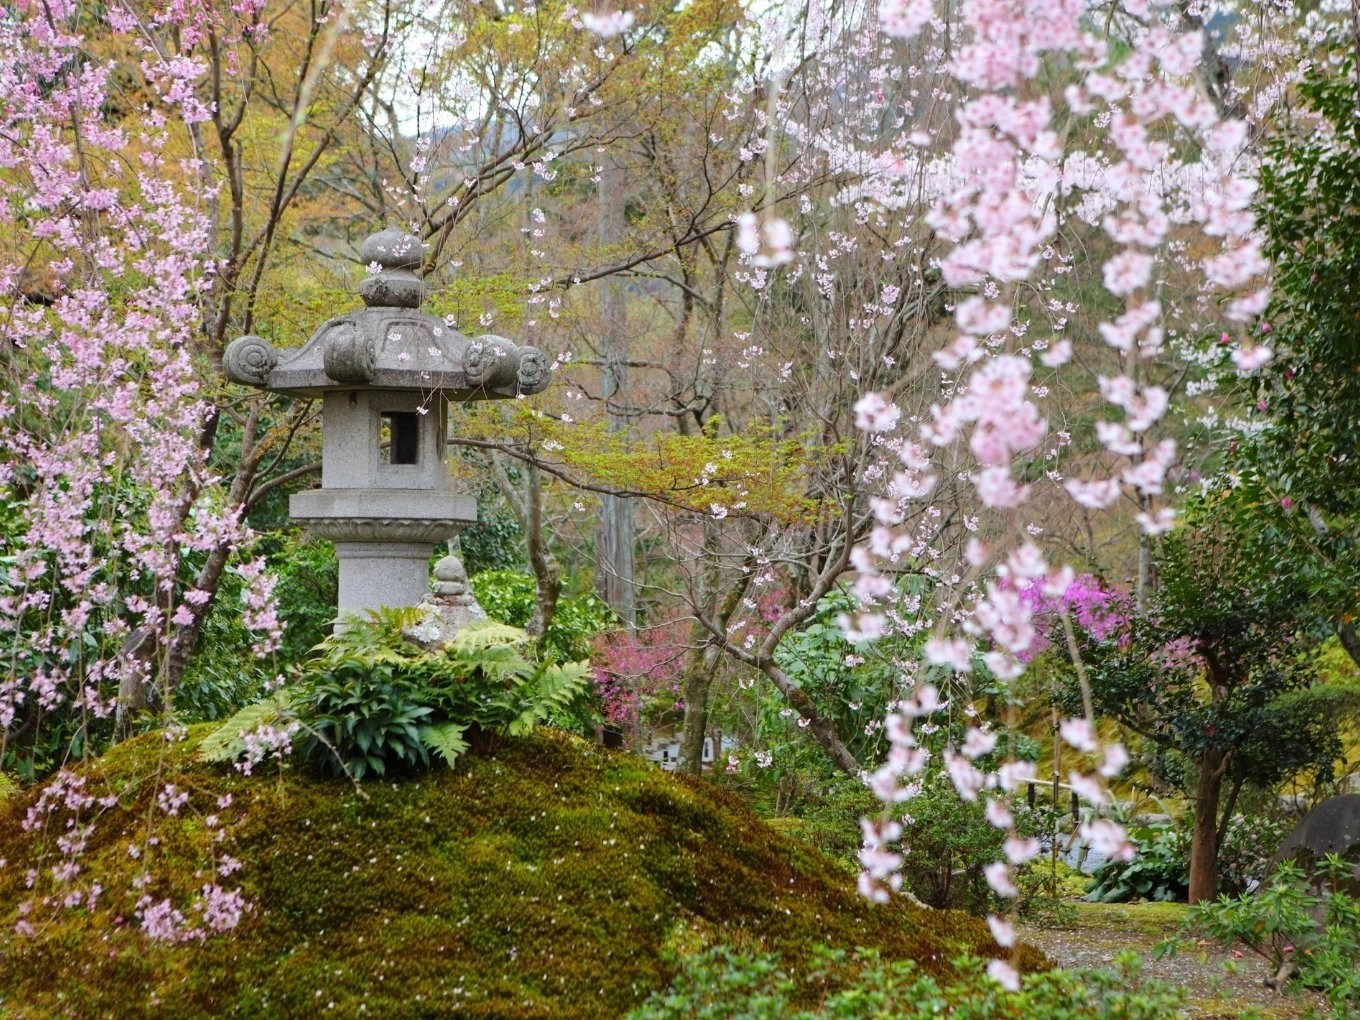 Planning Your Trip To Anderson Japanese Gardens